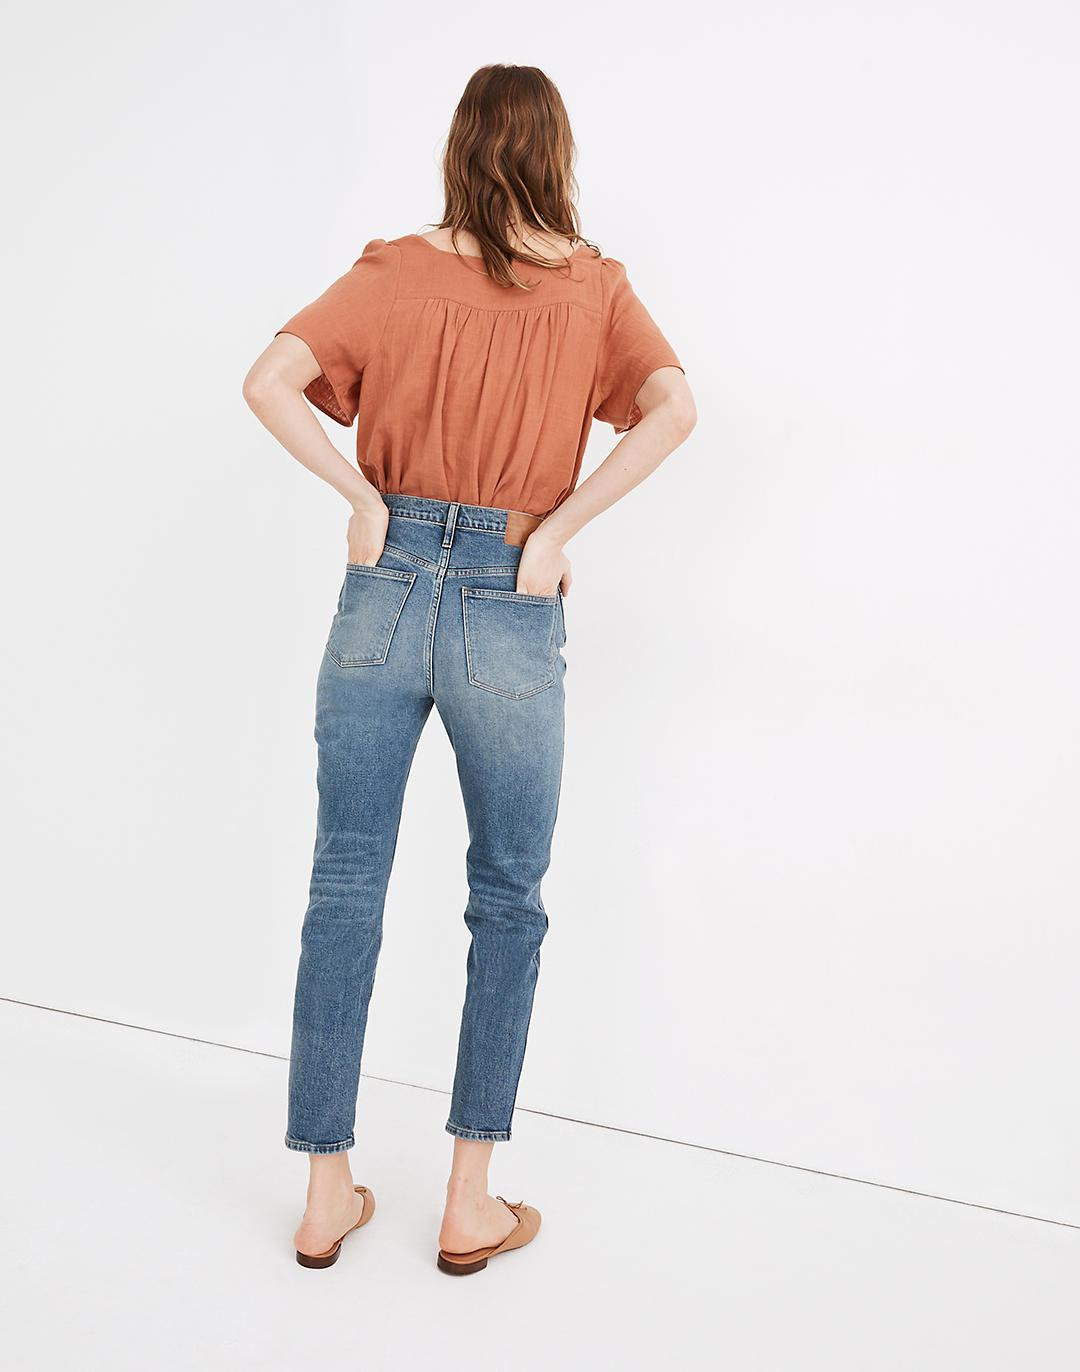 Rivet & Thread High-Rise Stovepipe Jeans in Keyes Wash 2